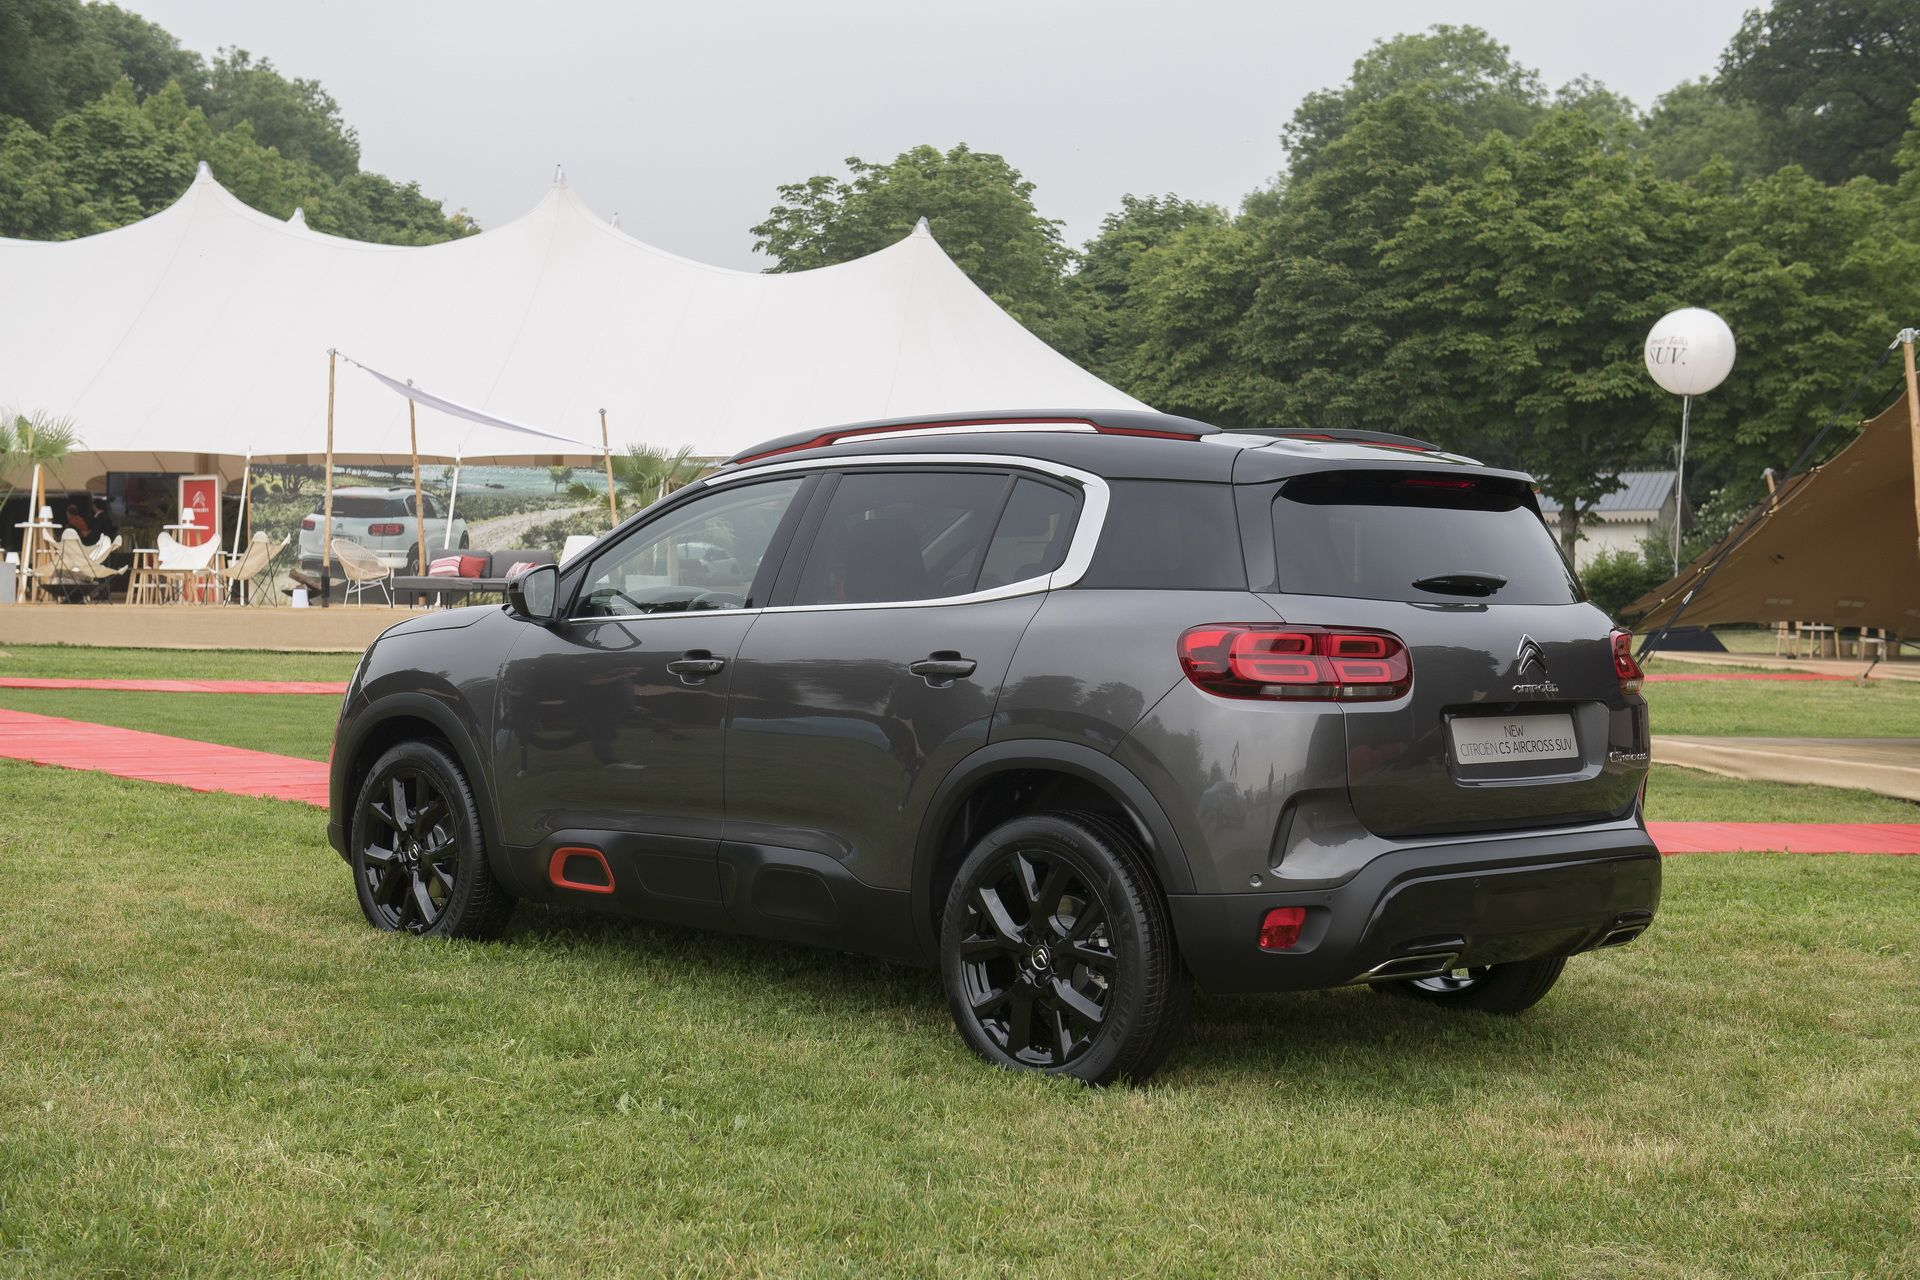 new citroen c5 aircross arrives in europe as the comfiest compact suv carscoops. Black Bedroom Furniture Sets. Home Design Ideas